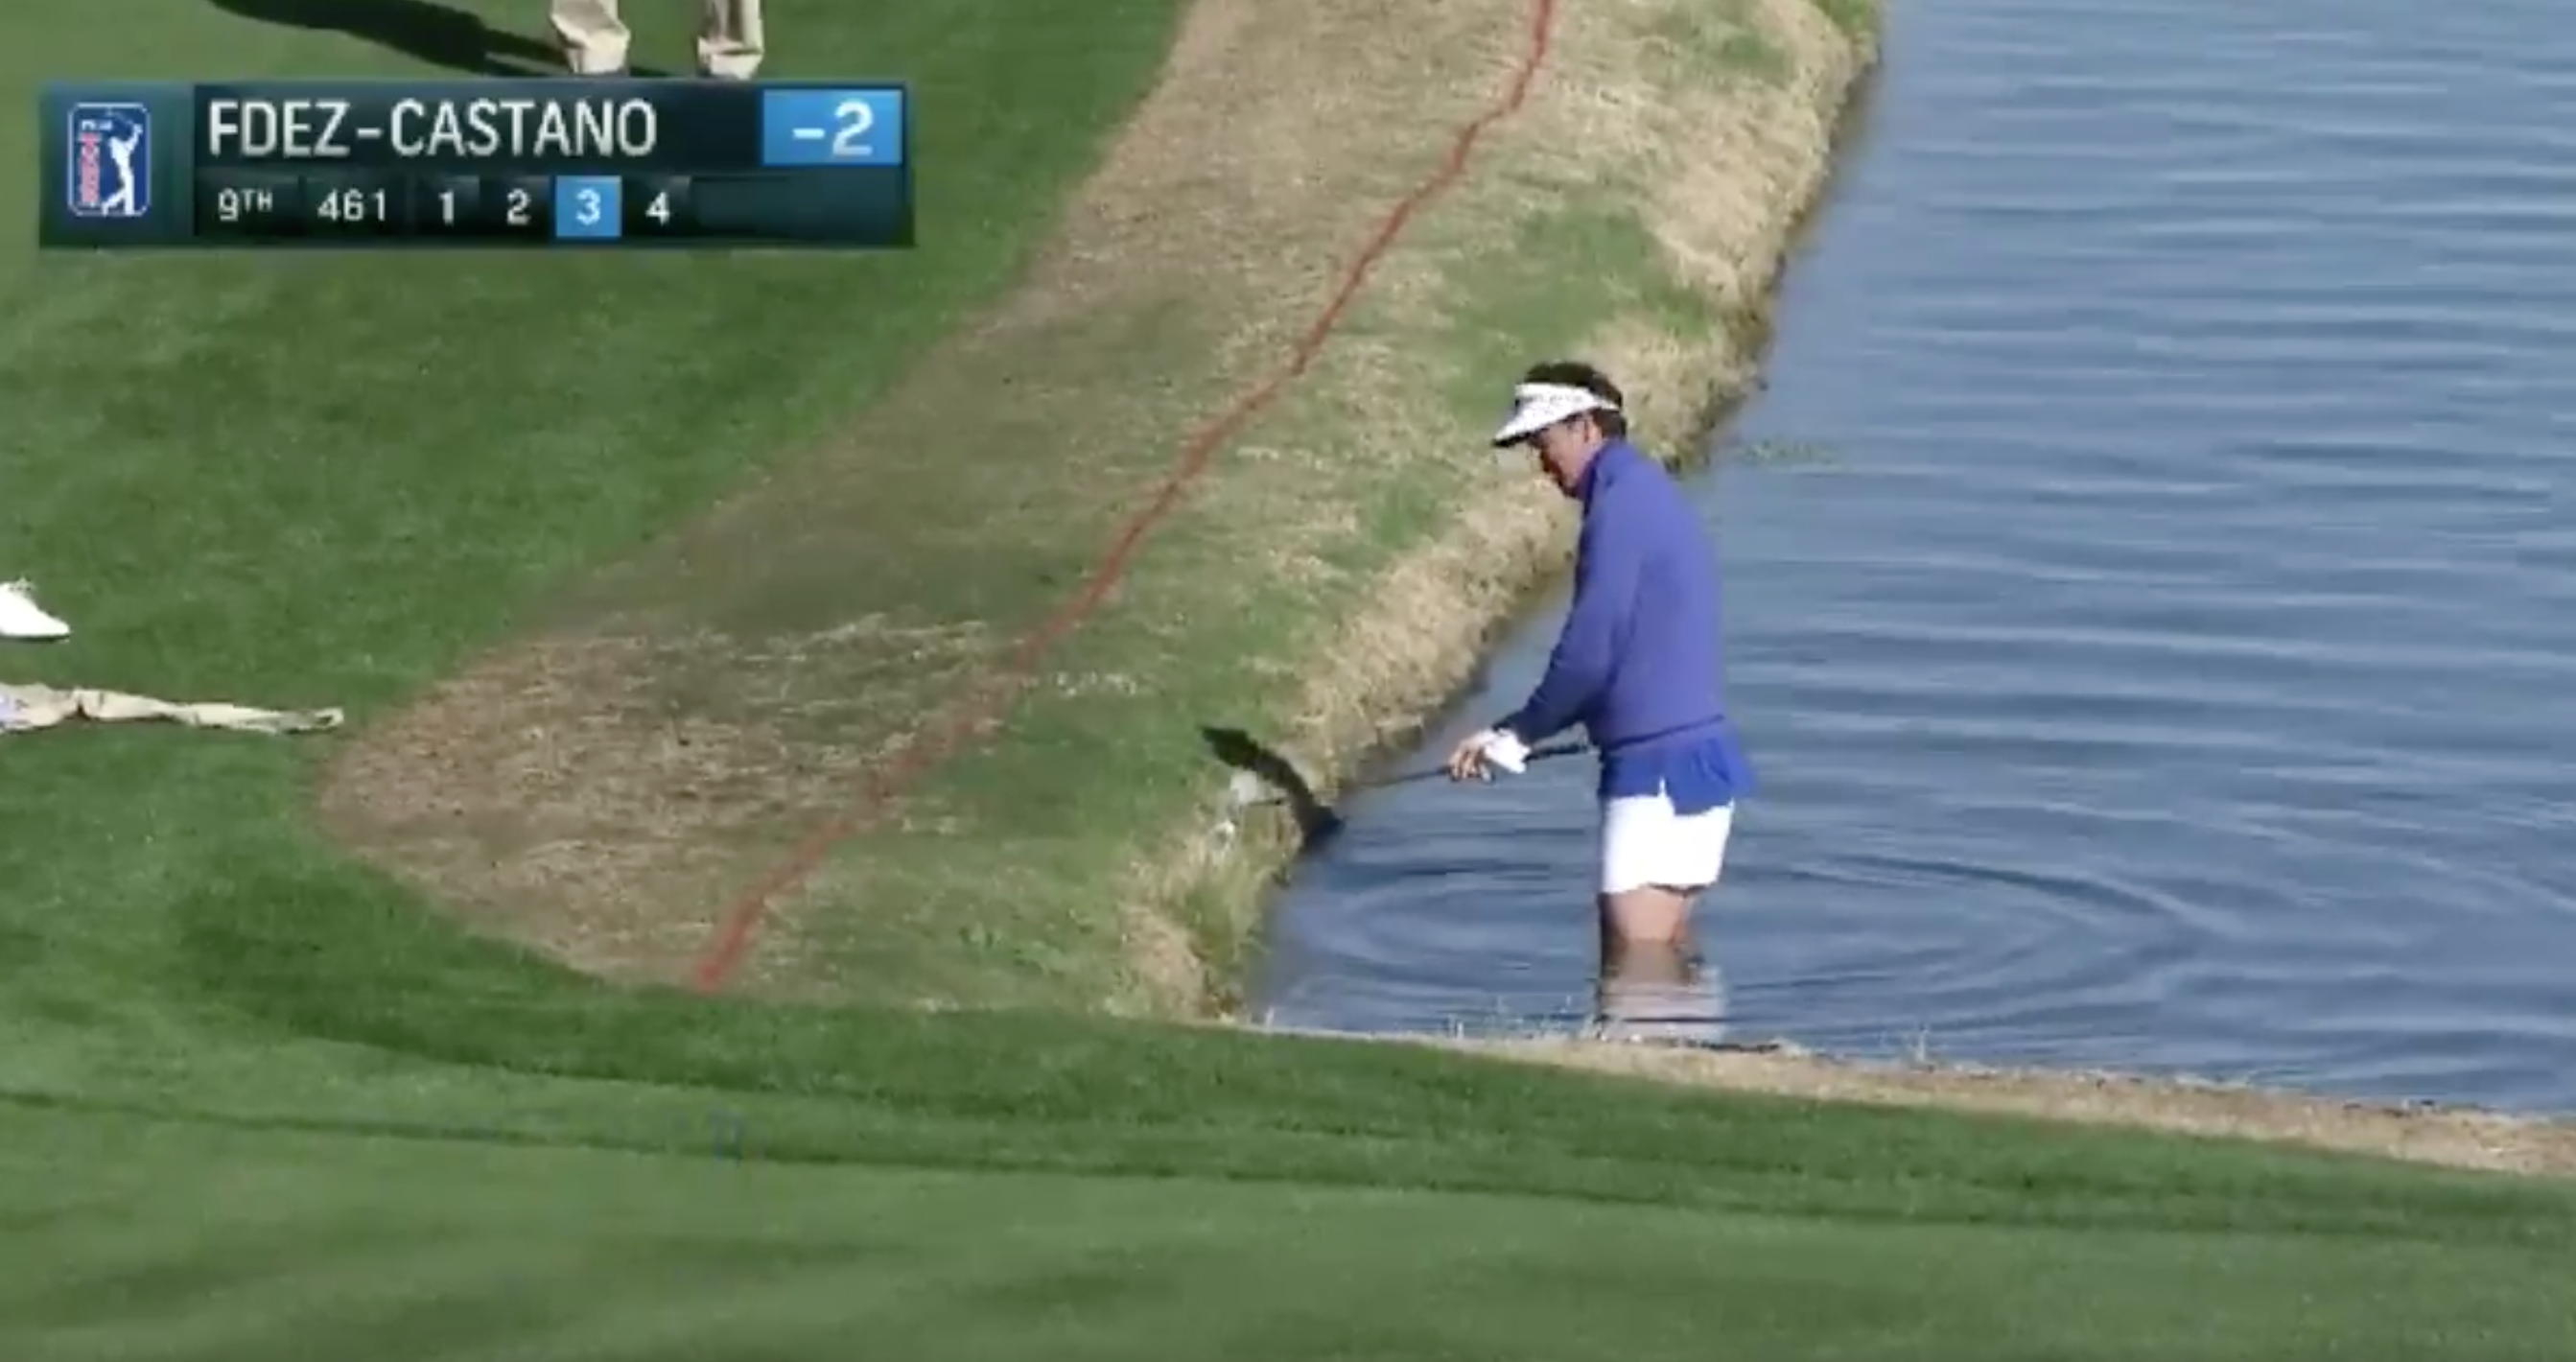 Gonzalo Fdez-Castano didn't let a little water hazard get in the way of his shot attempt.